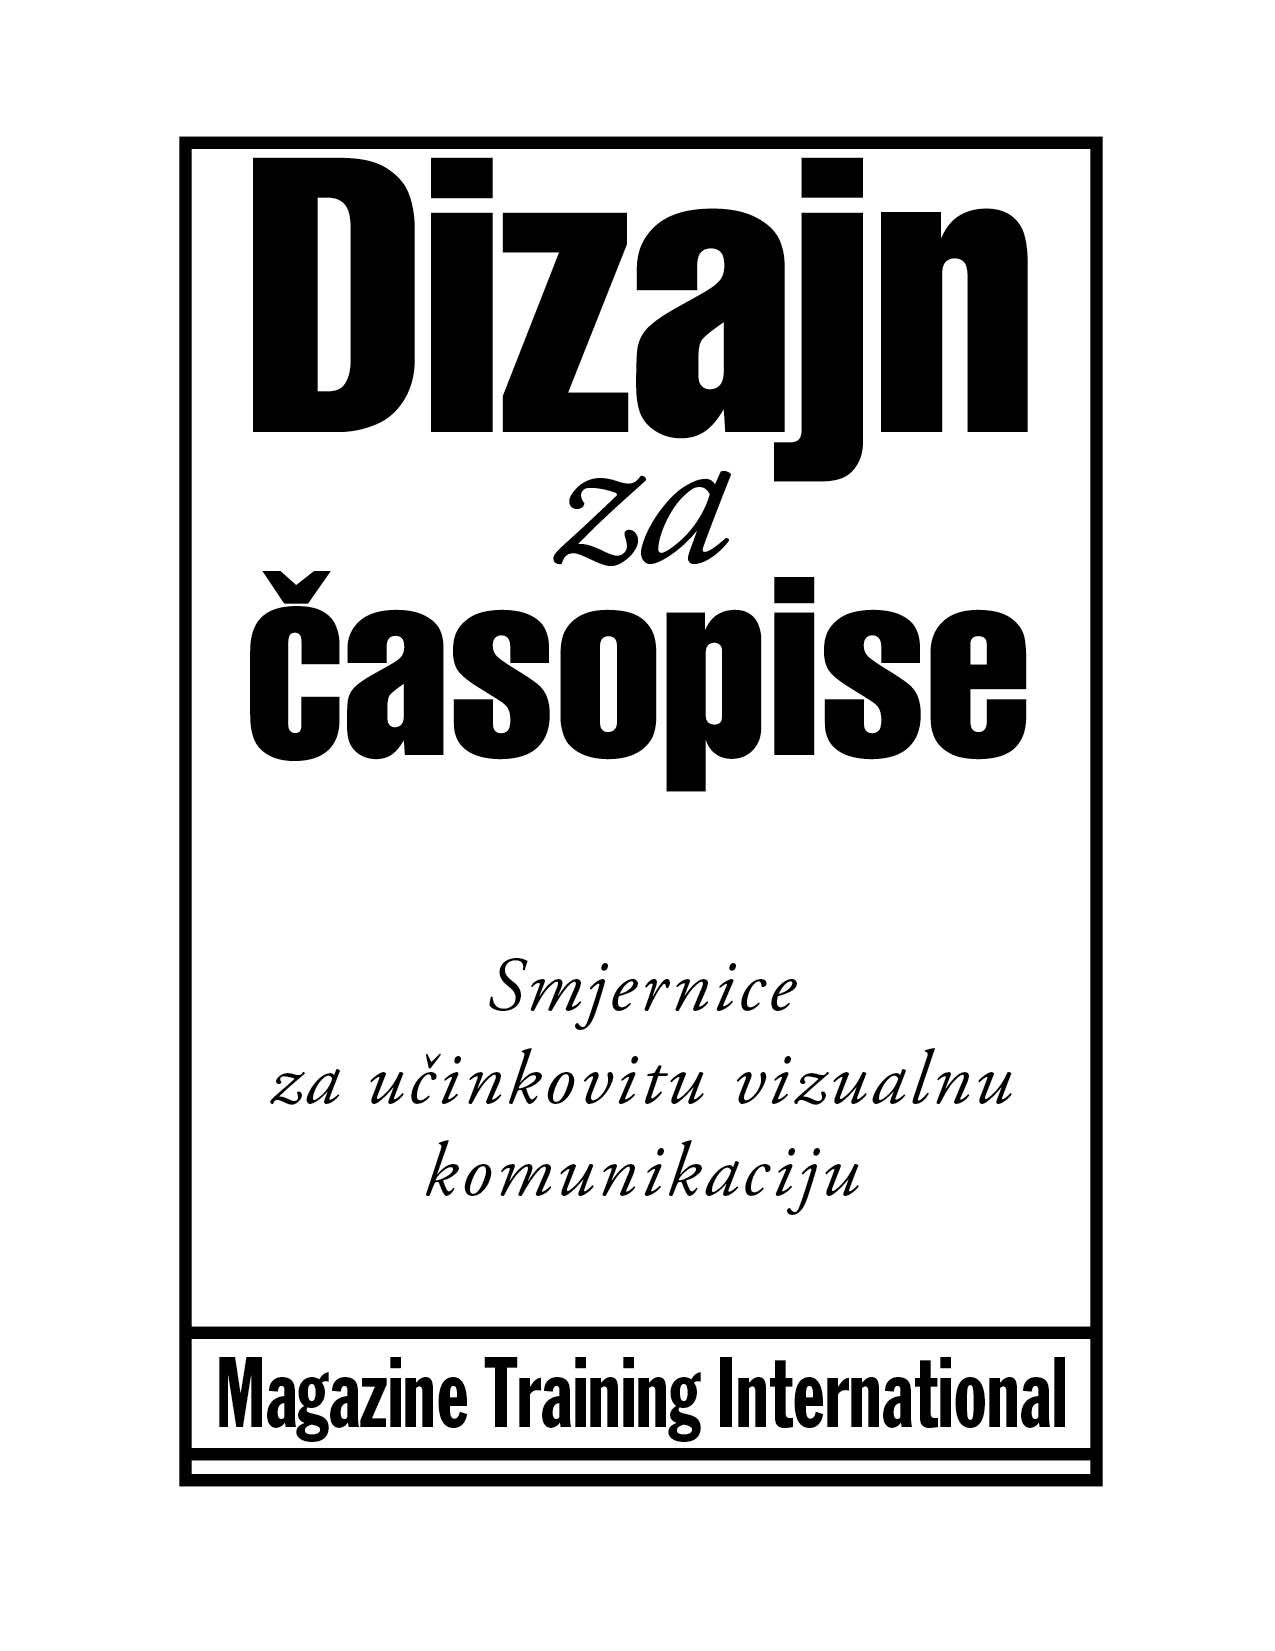 Magazine Training International » Blog Archive Design for